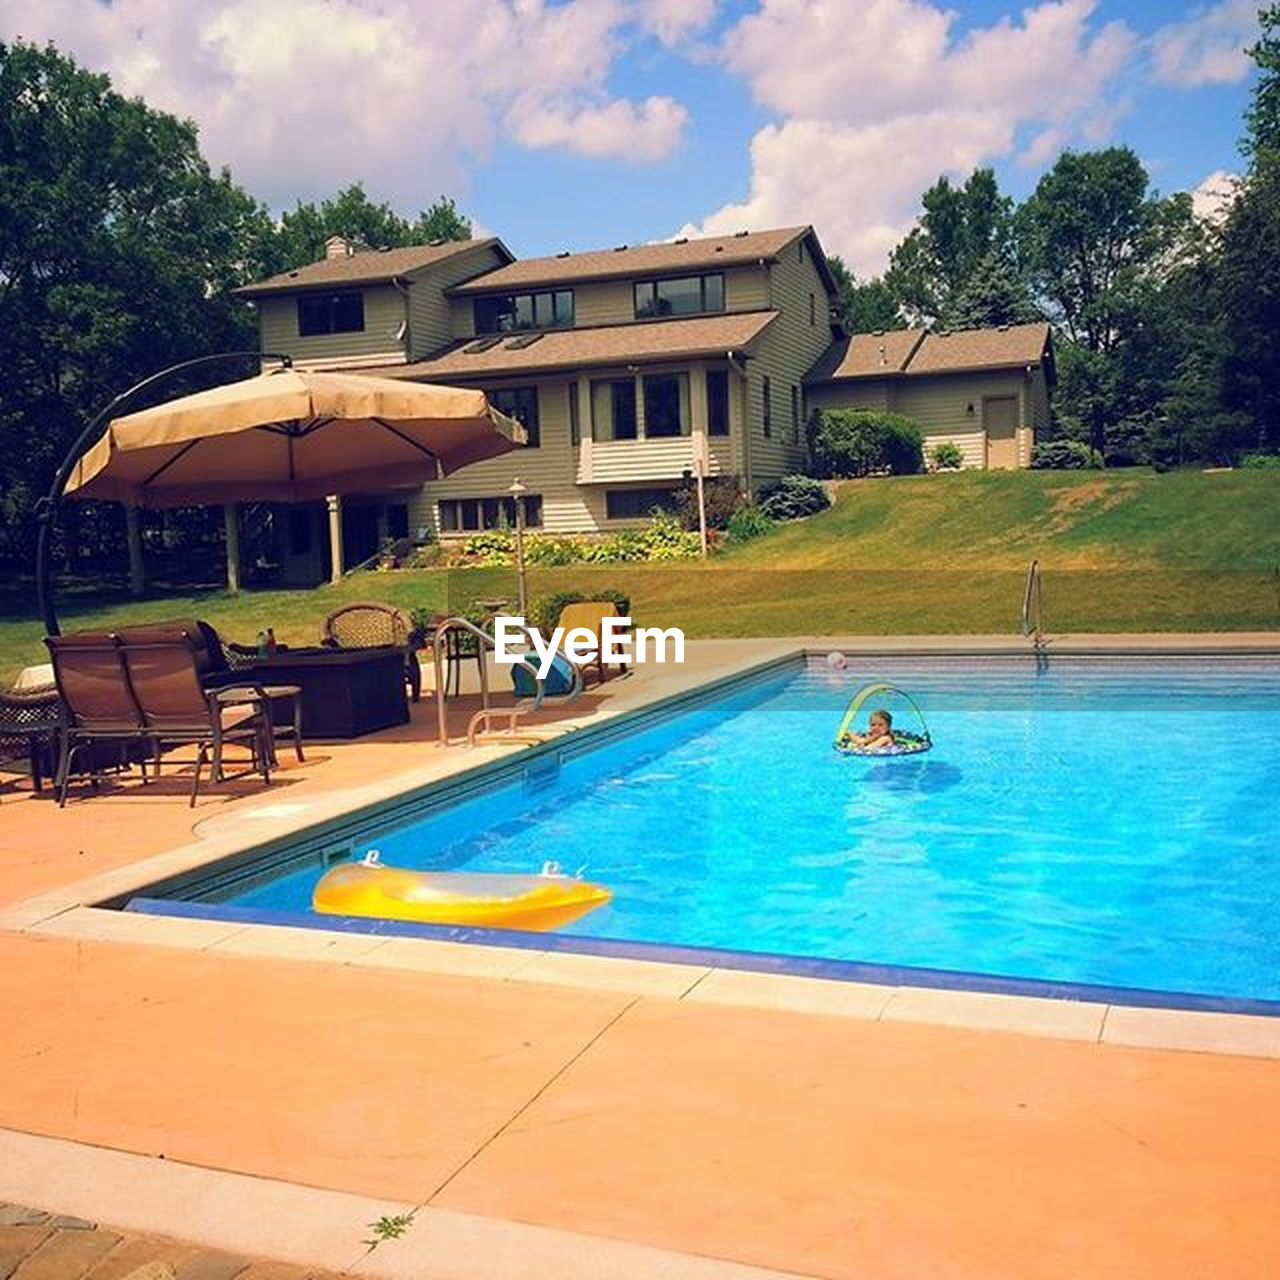 swimming pool, water, poolside, architecture, tourist resort, building exterior, vacations, day, luxury, outdoors, tree, summer, blue, sky, health spa, relaxation, holiday villa, nature, no people, swimming